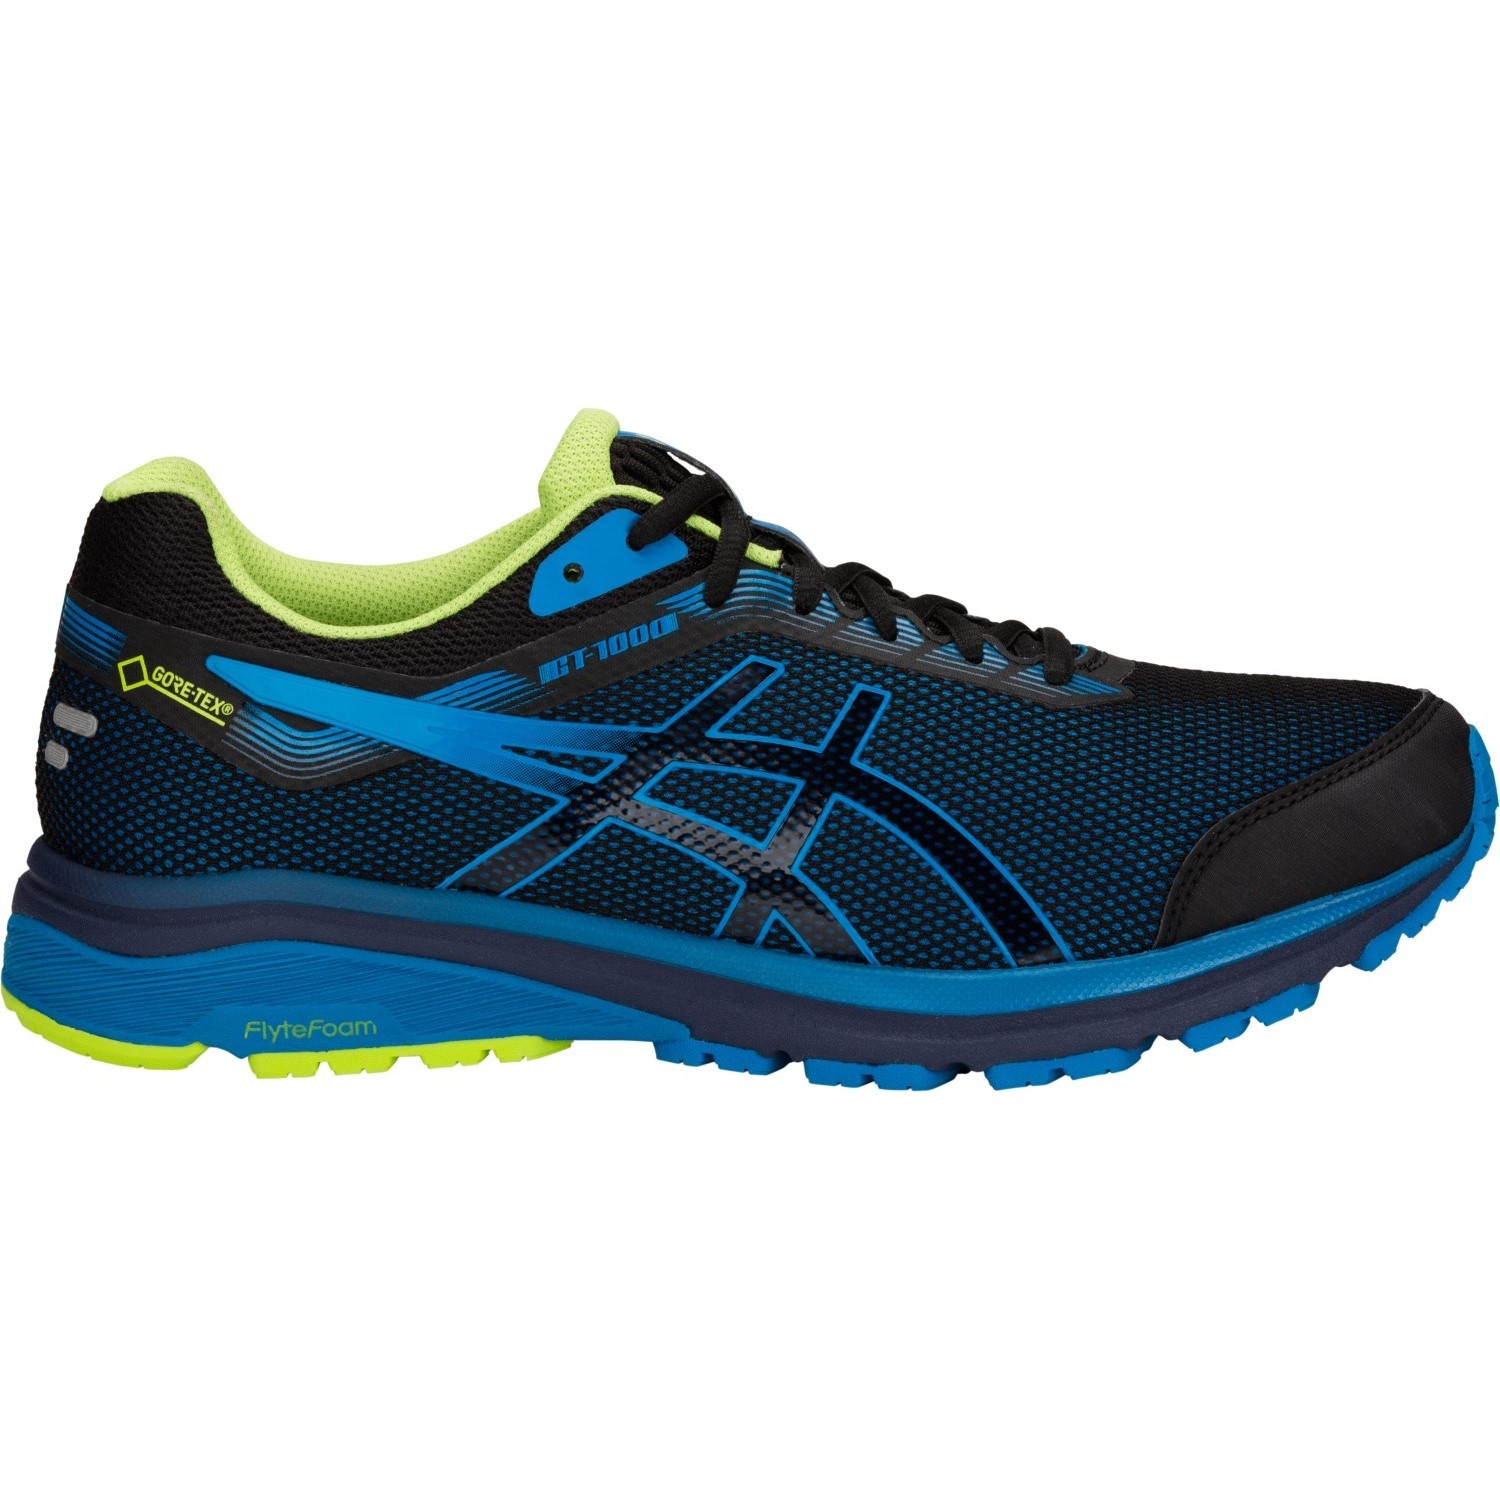 Asics GT-1000 7 GTX - Mens Running Shoes